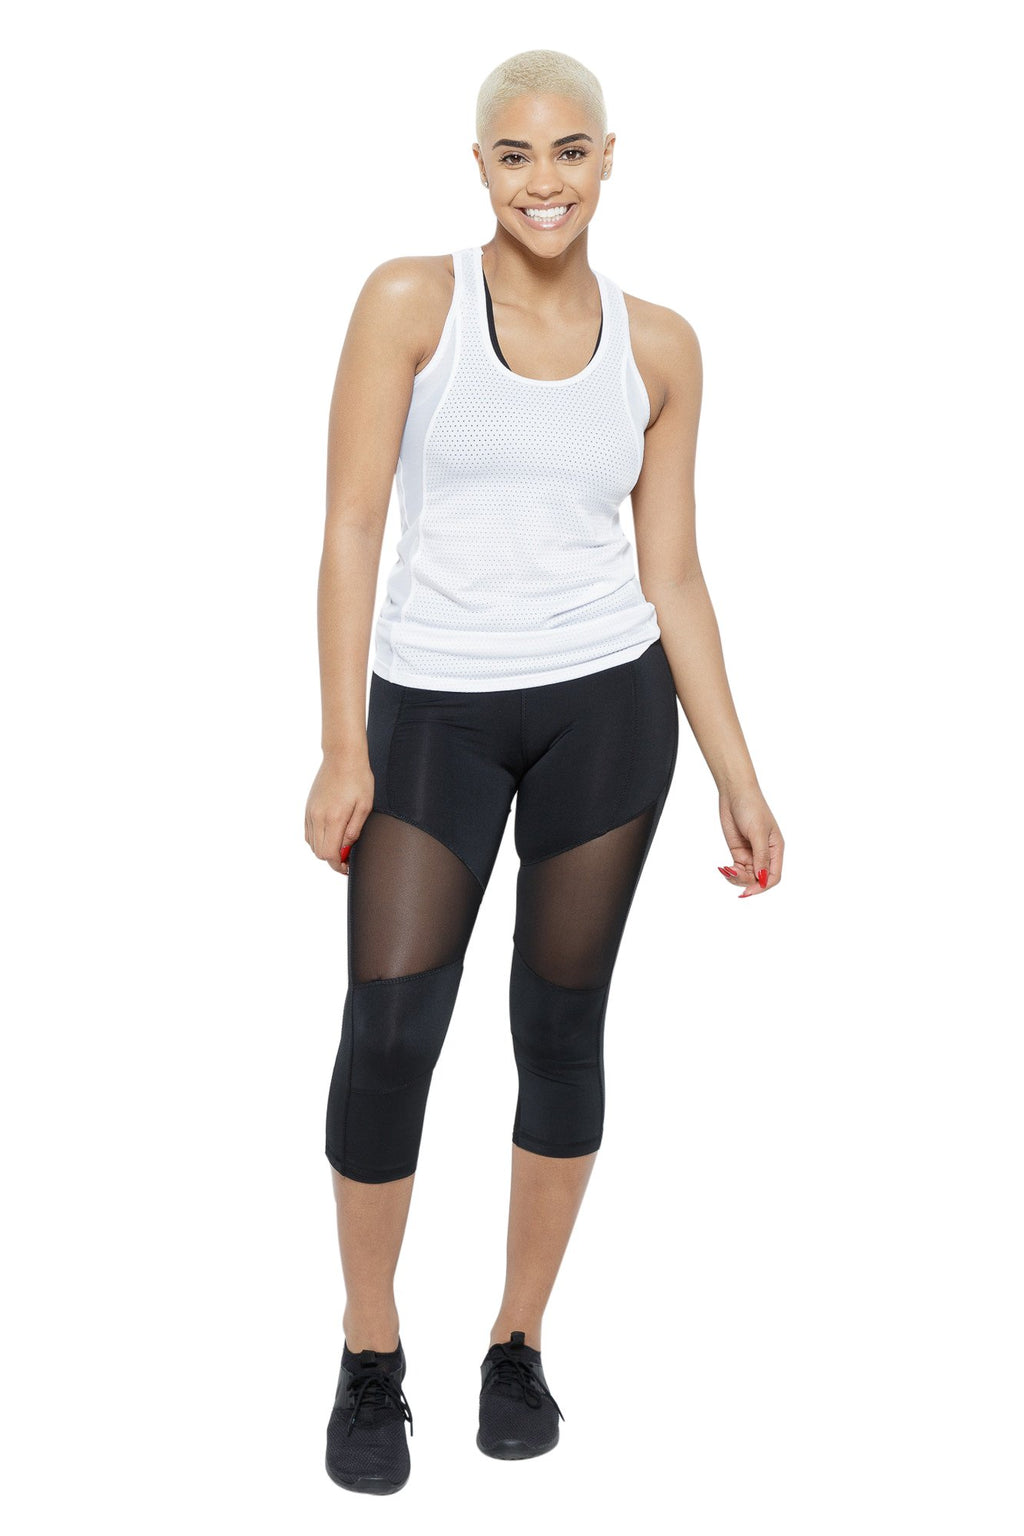 Slaythm Performance Capris Clothing Fair Shade S Black 87% Polyester, 13% Spandex